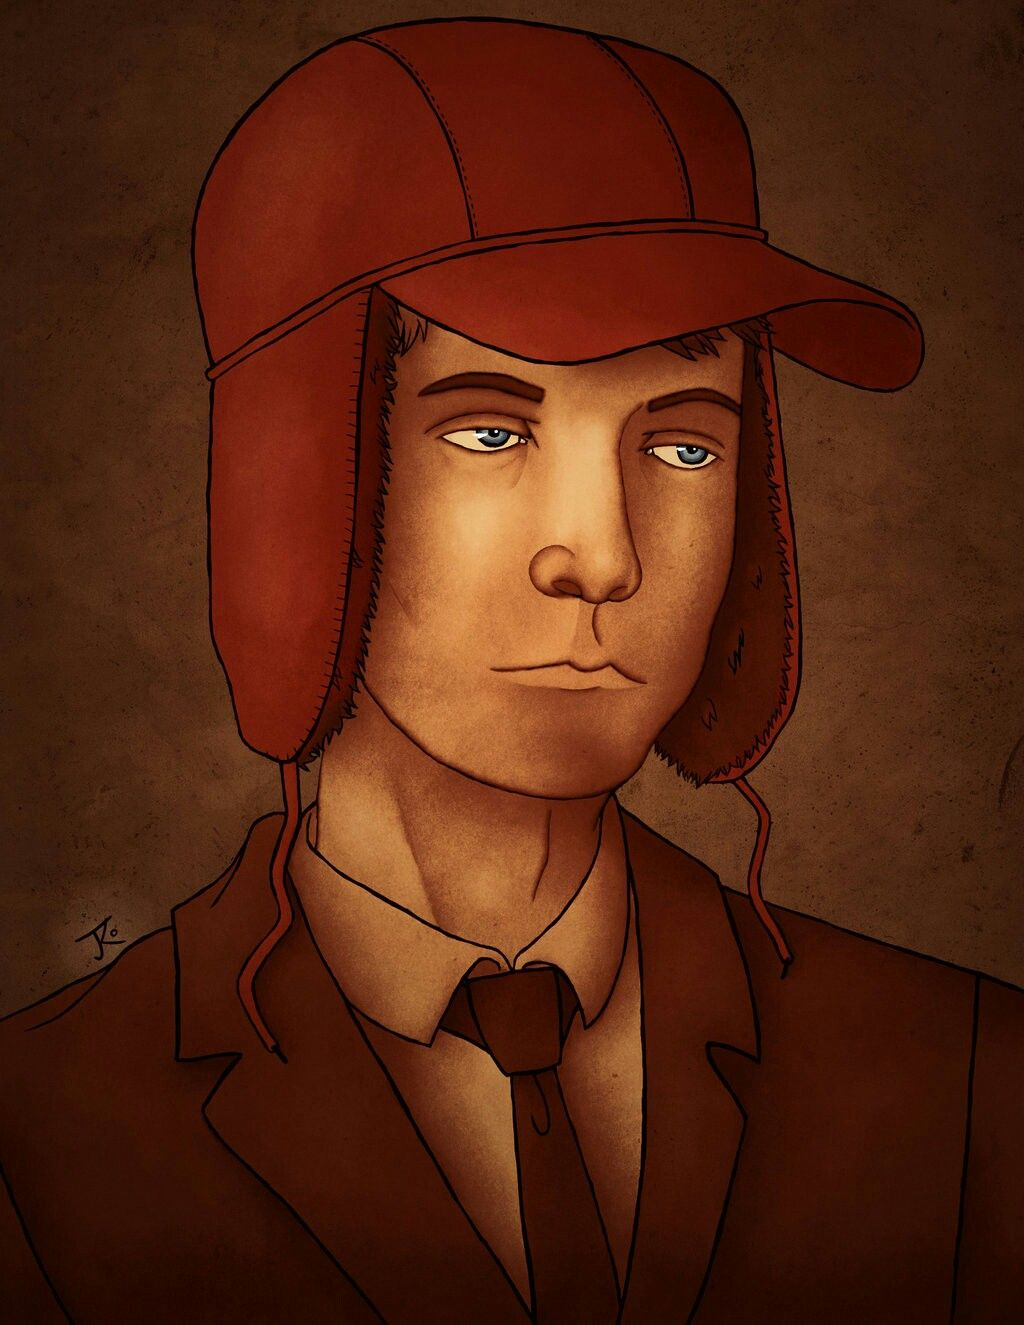 holden caulfield media art and holden caulfield holden caulfield